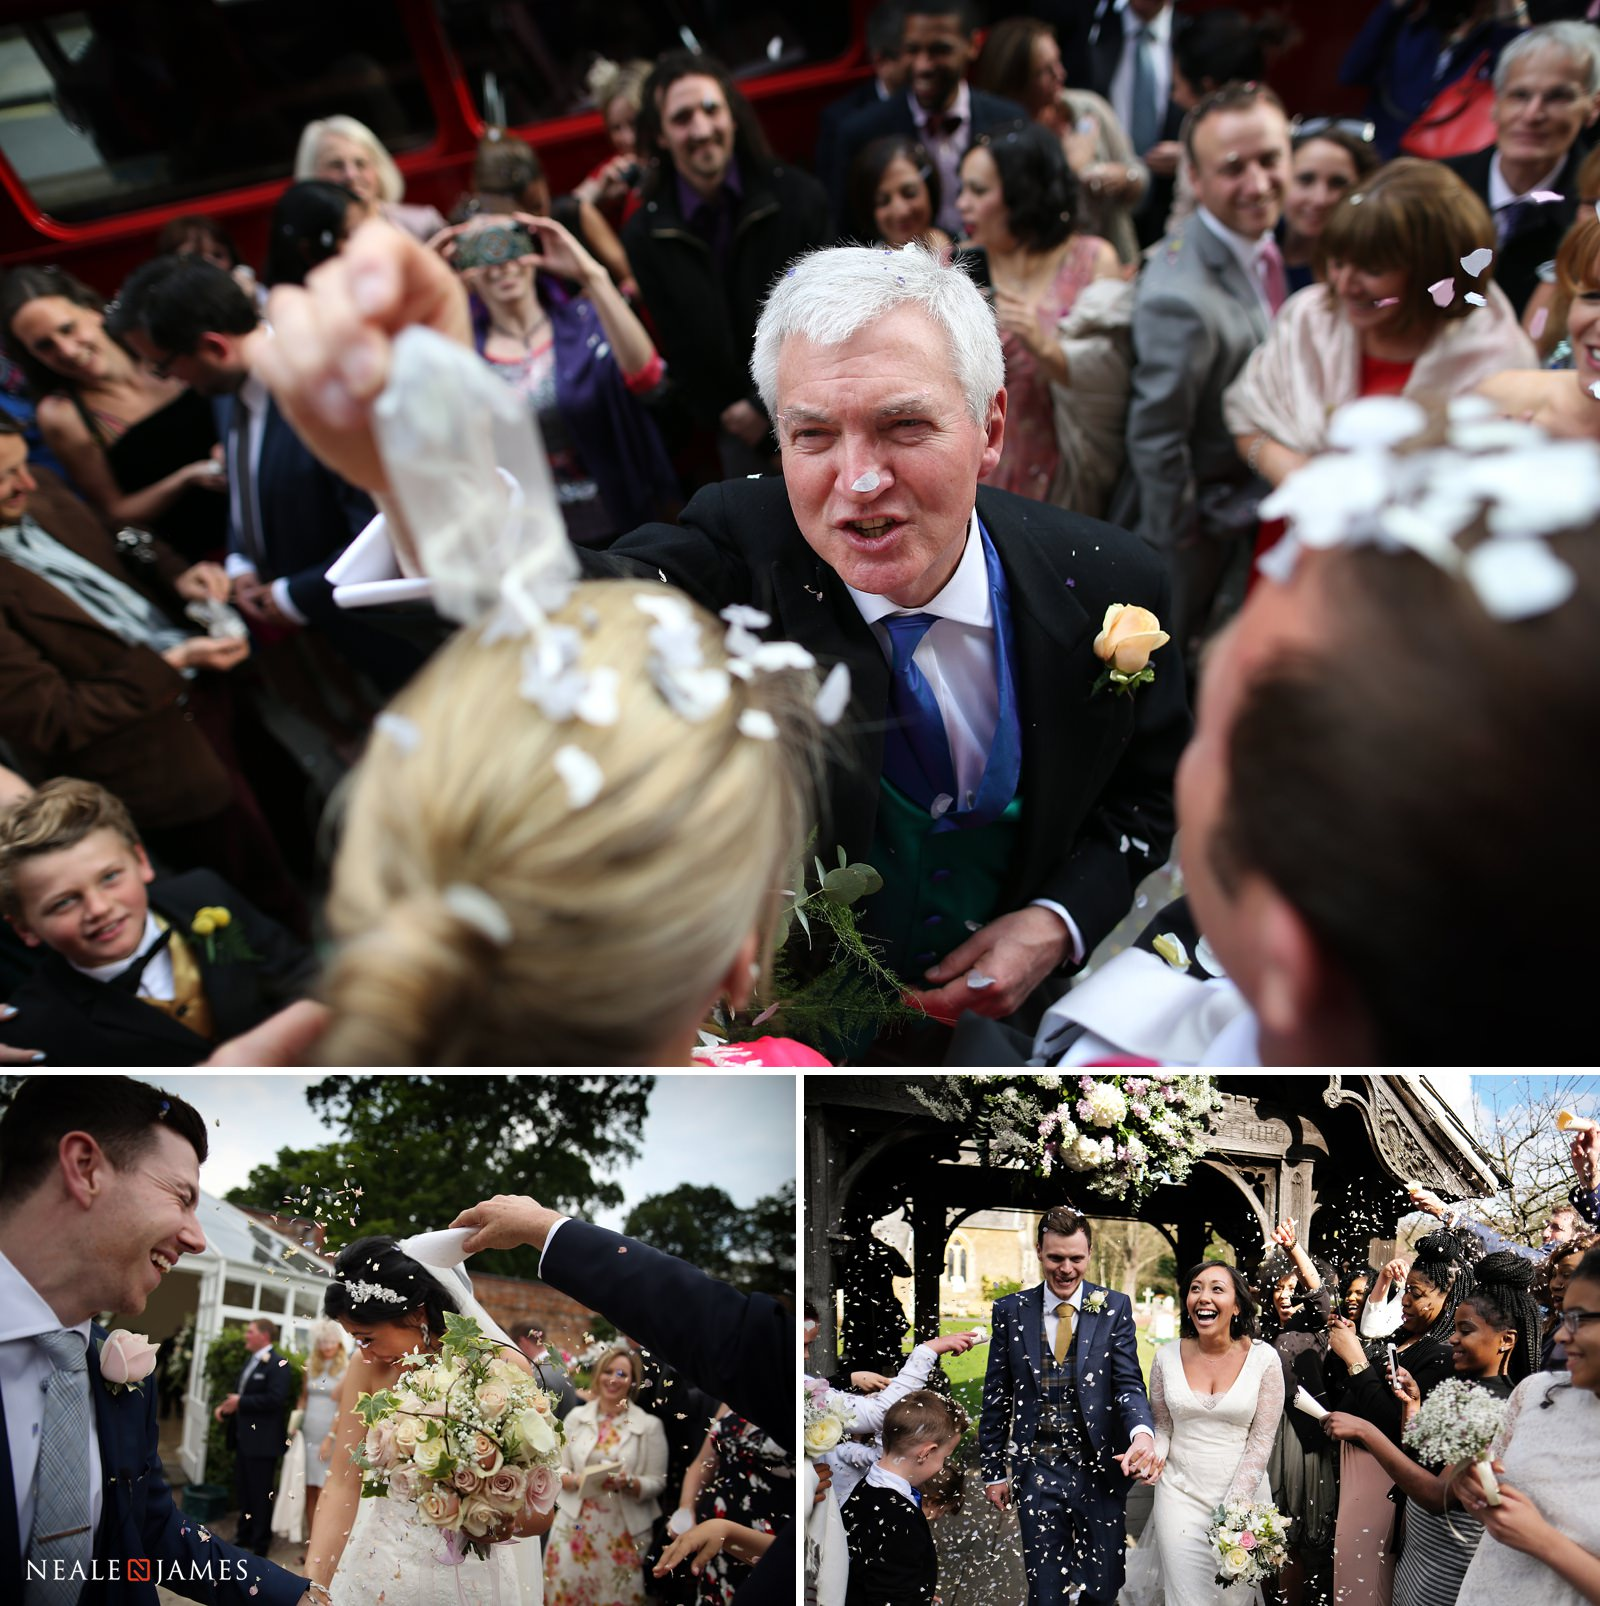 Colour picture of confetti being thrown at a wedding